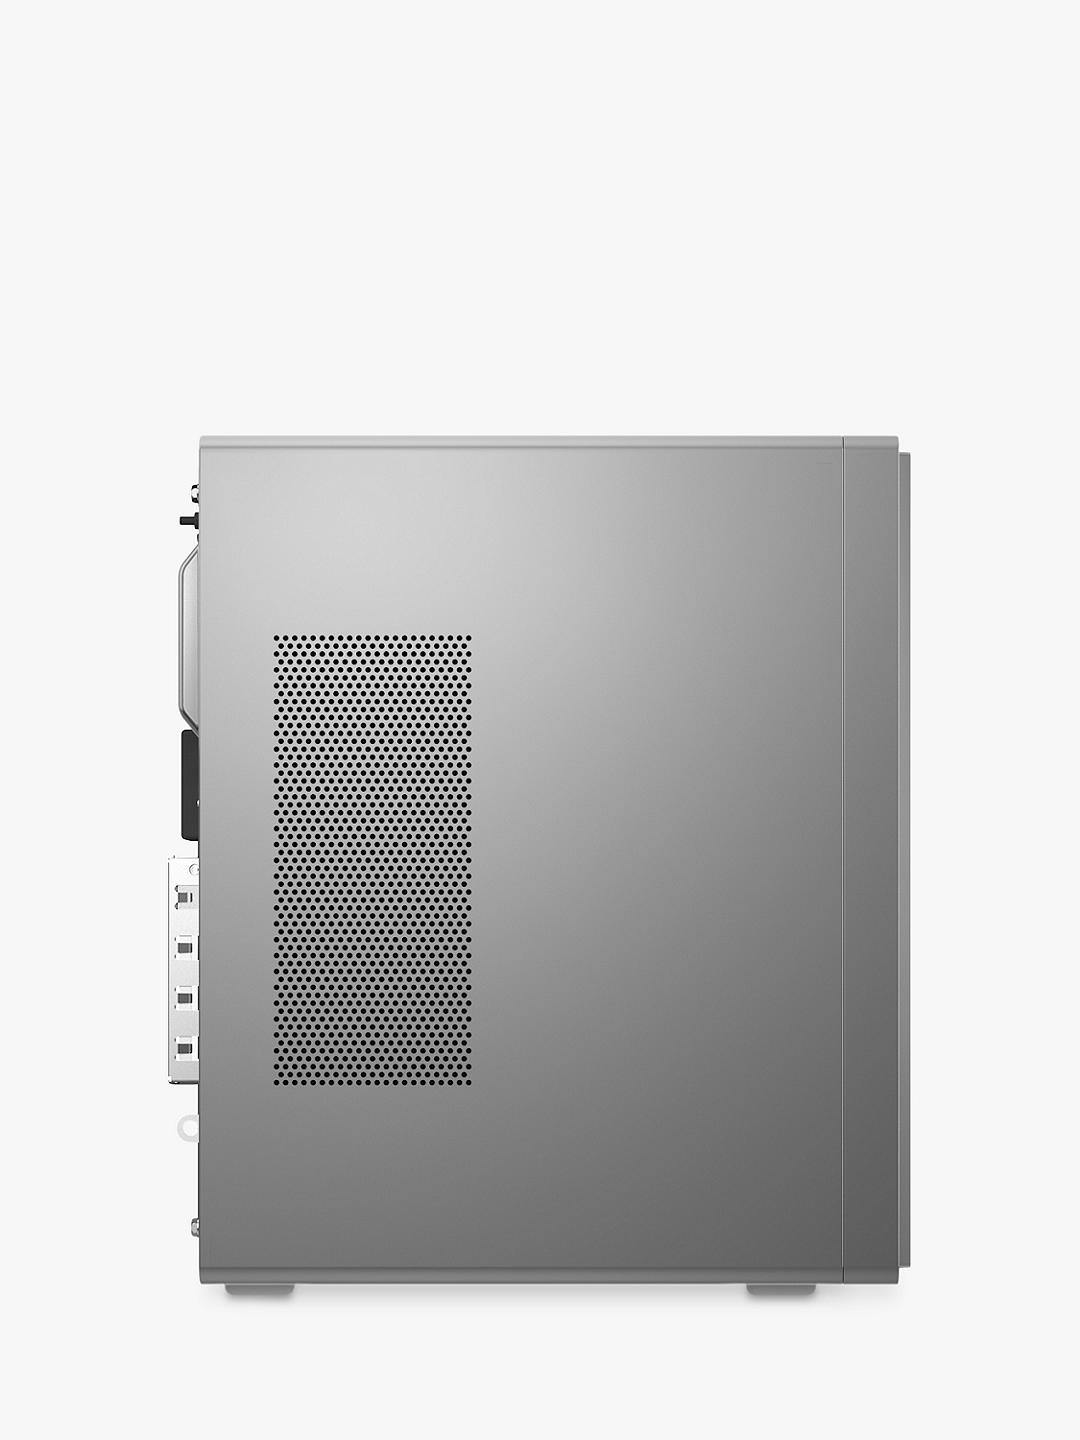 Buy Lenovo IdeaCentre 5 90NA001MUK Desktop PC, Intel Core i7 Processor, 16GB RAM, 2TB HDD + 256GB SSD, Black Online at johnlewis.com